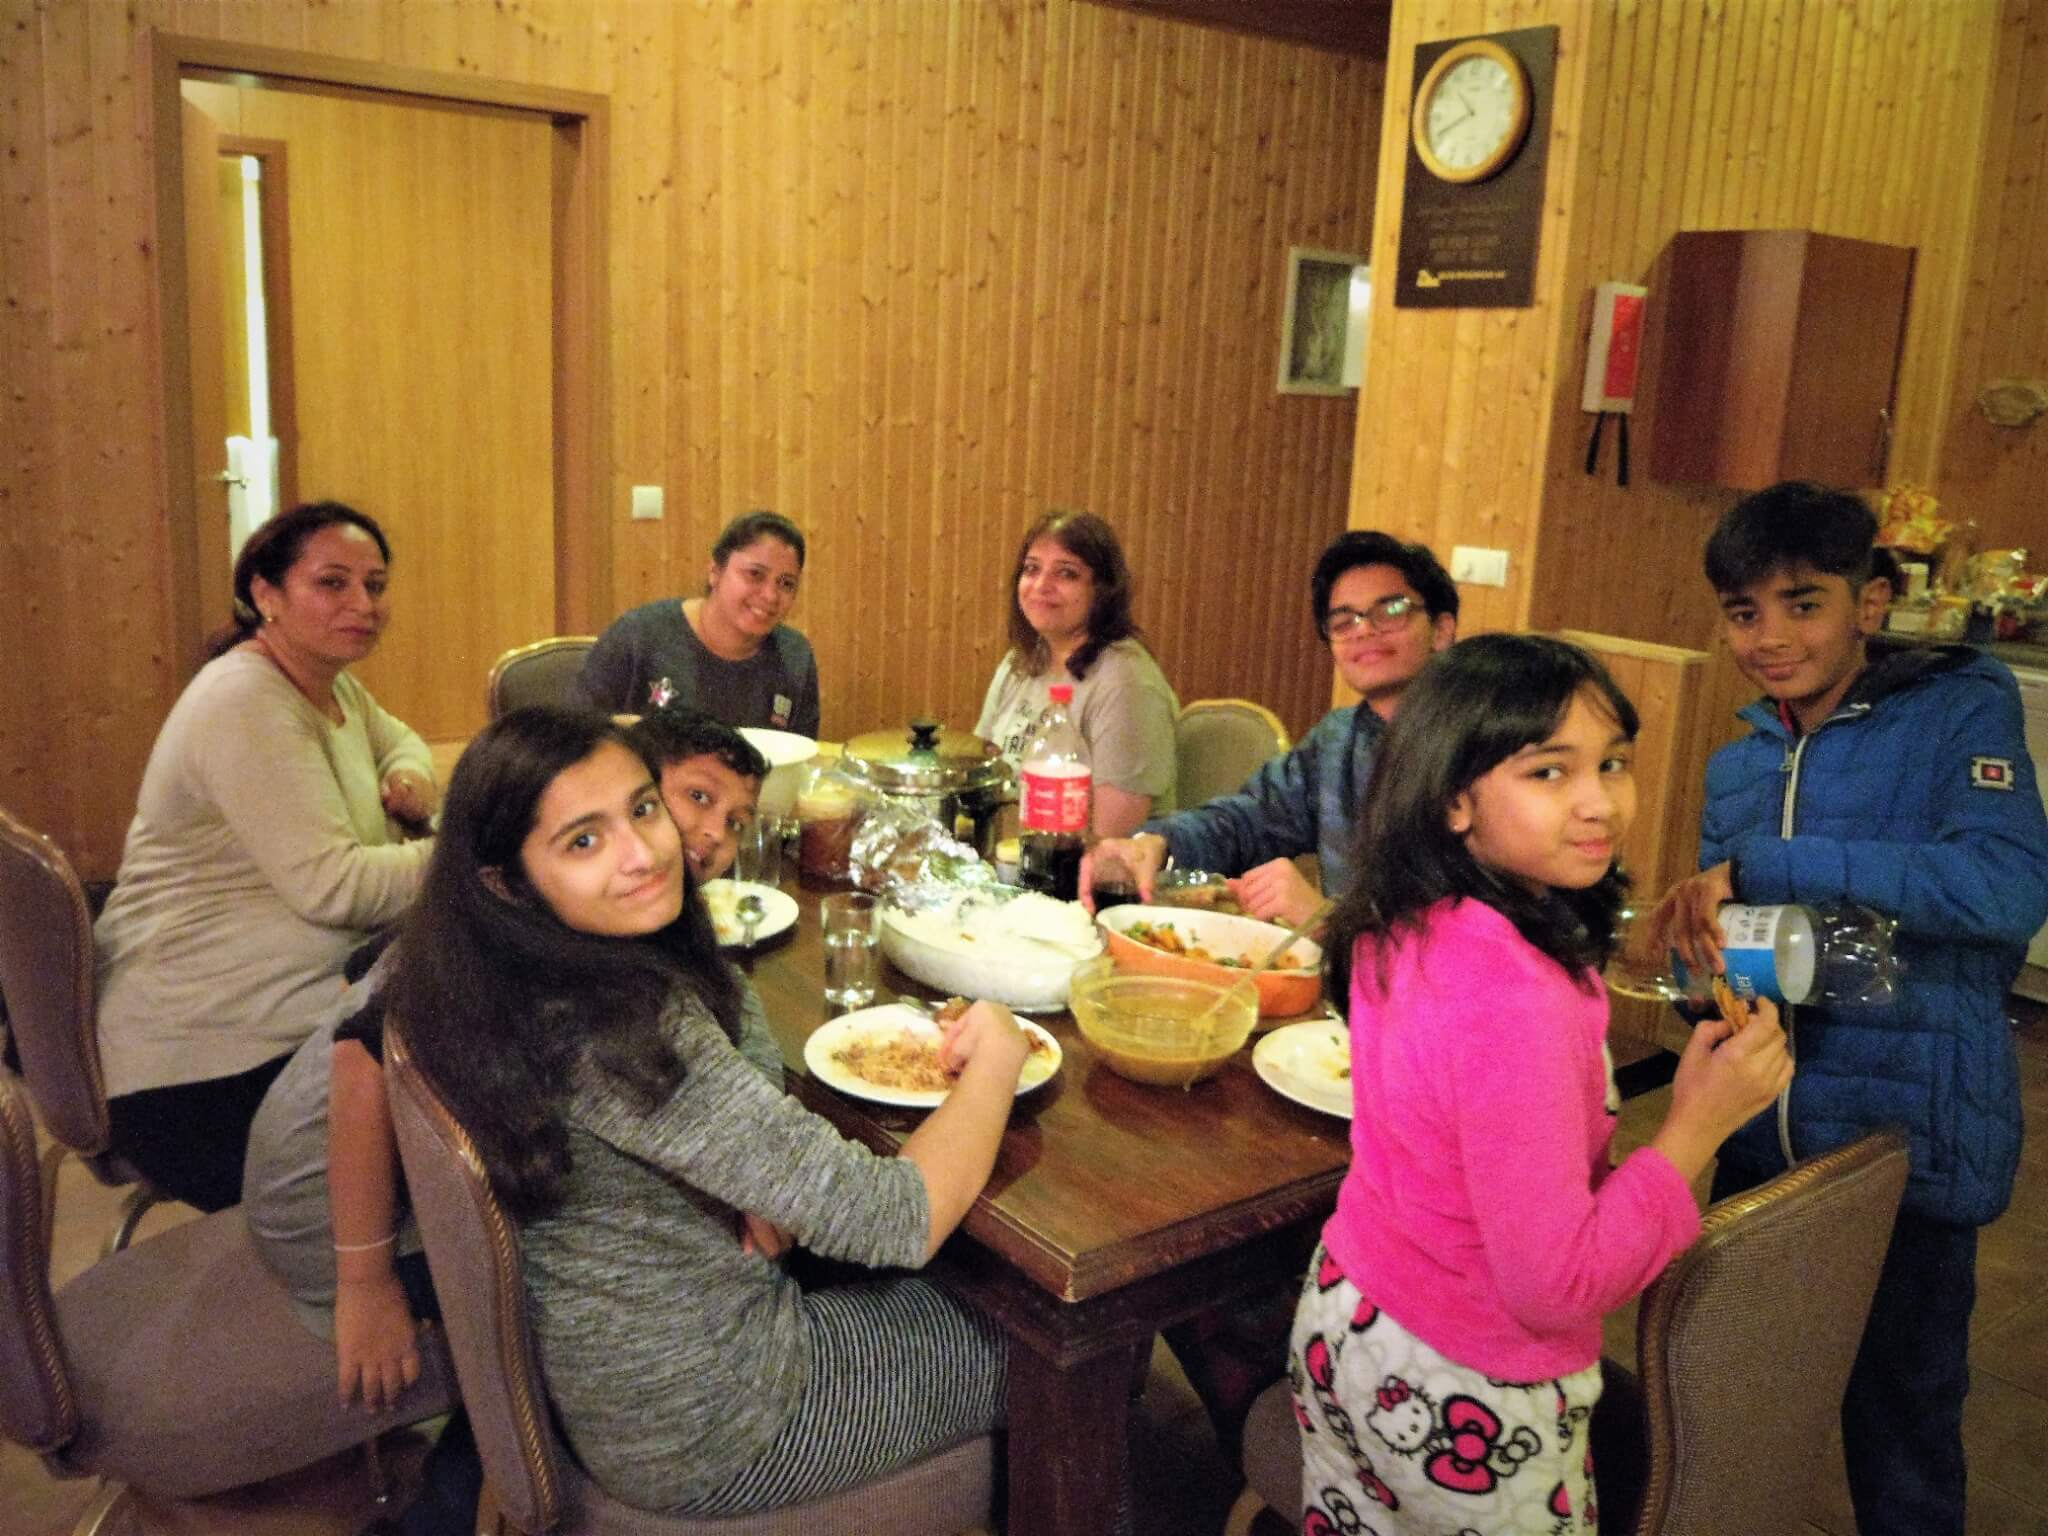 Team Dinner at Uthlid Cottages. Iceland Road Trip Day 1